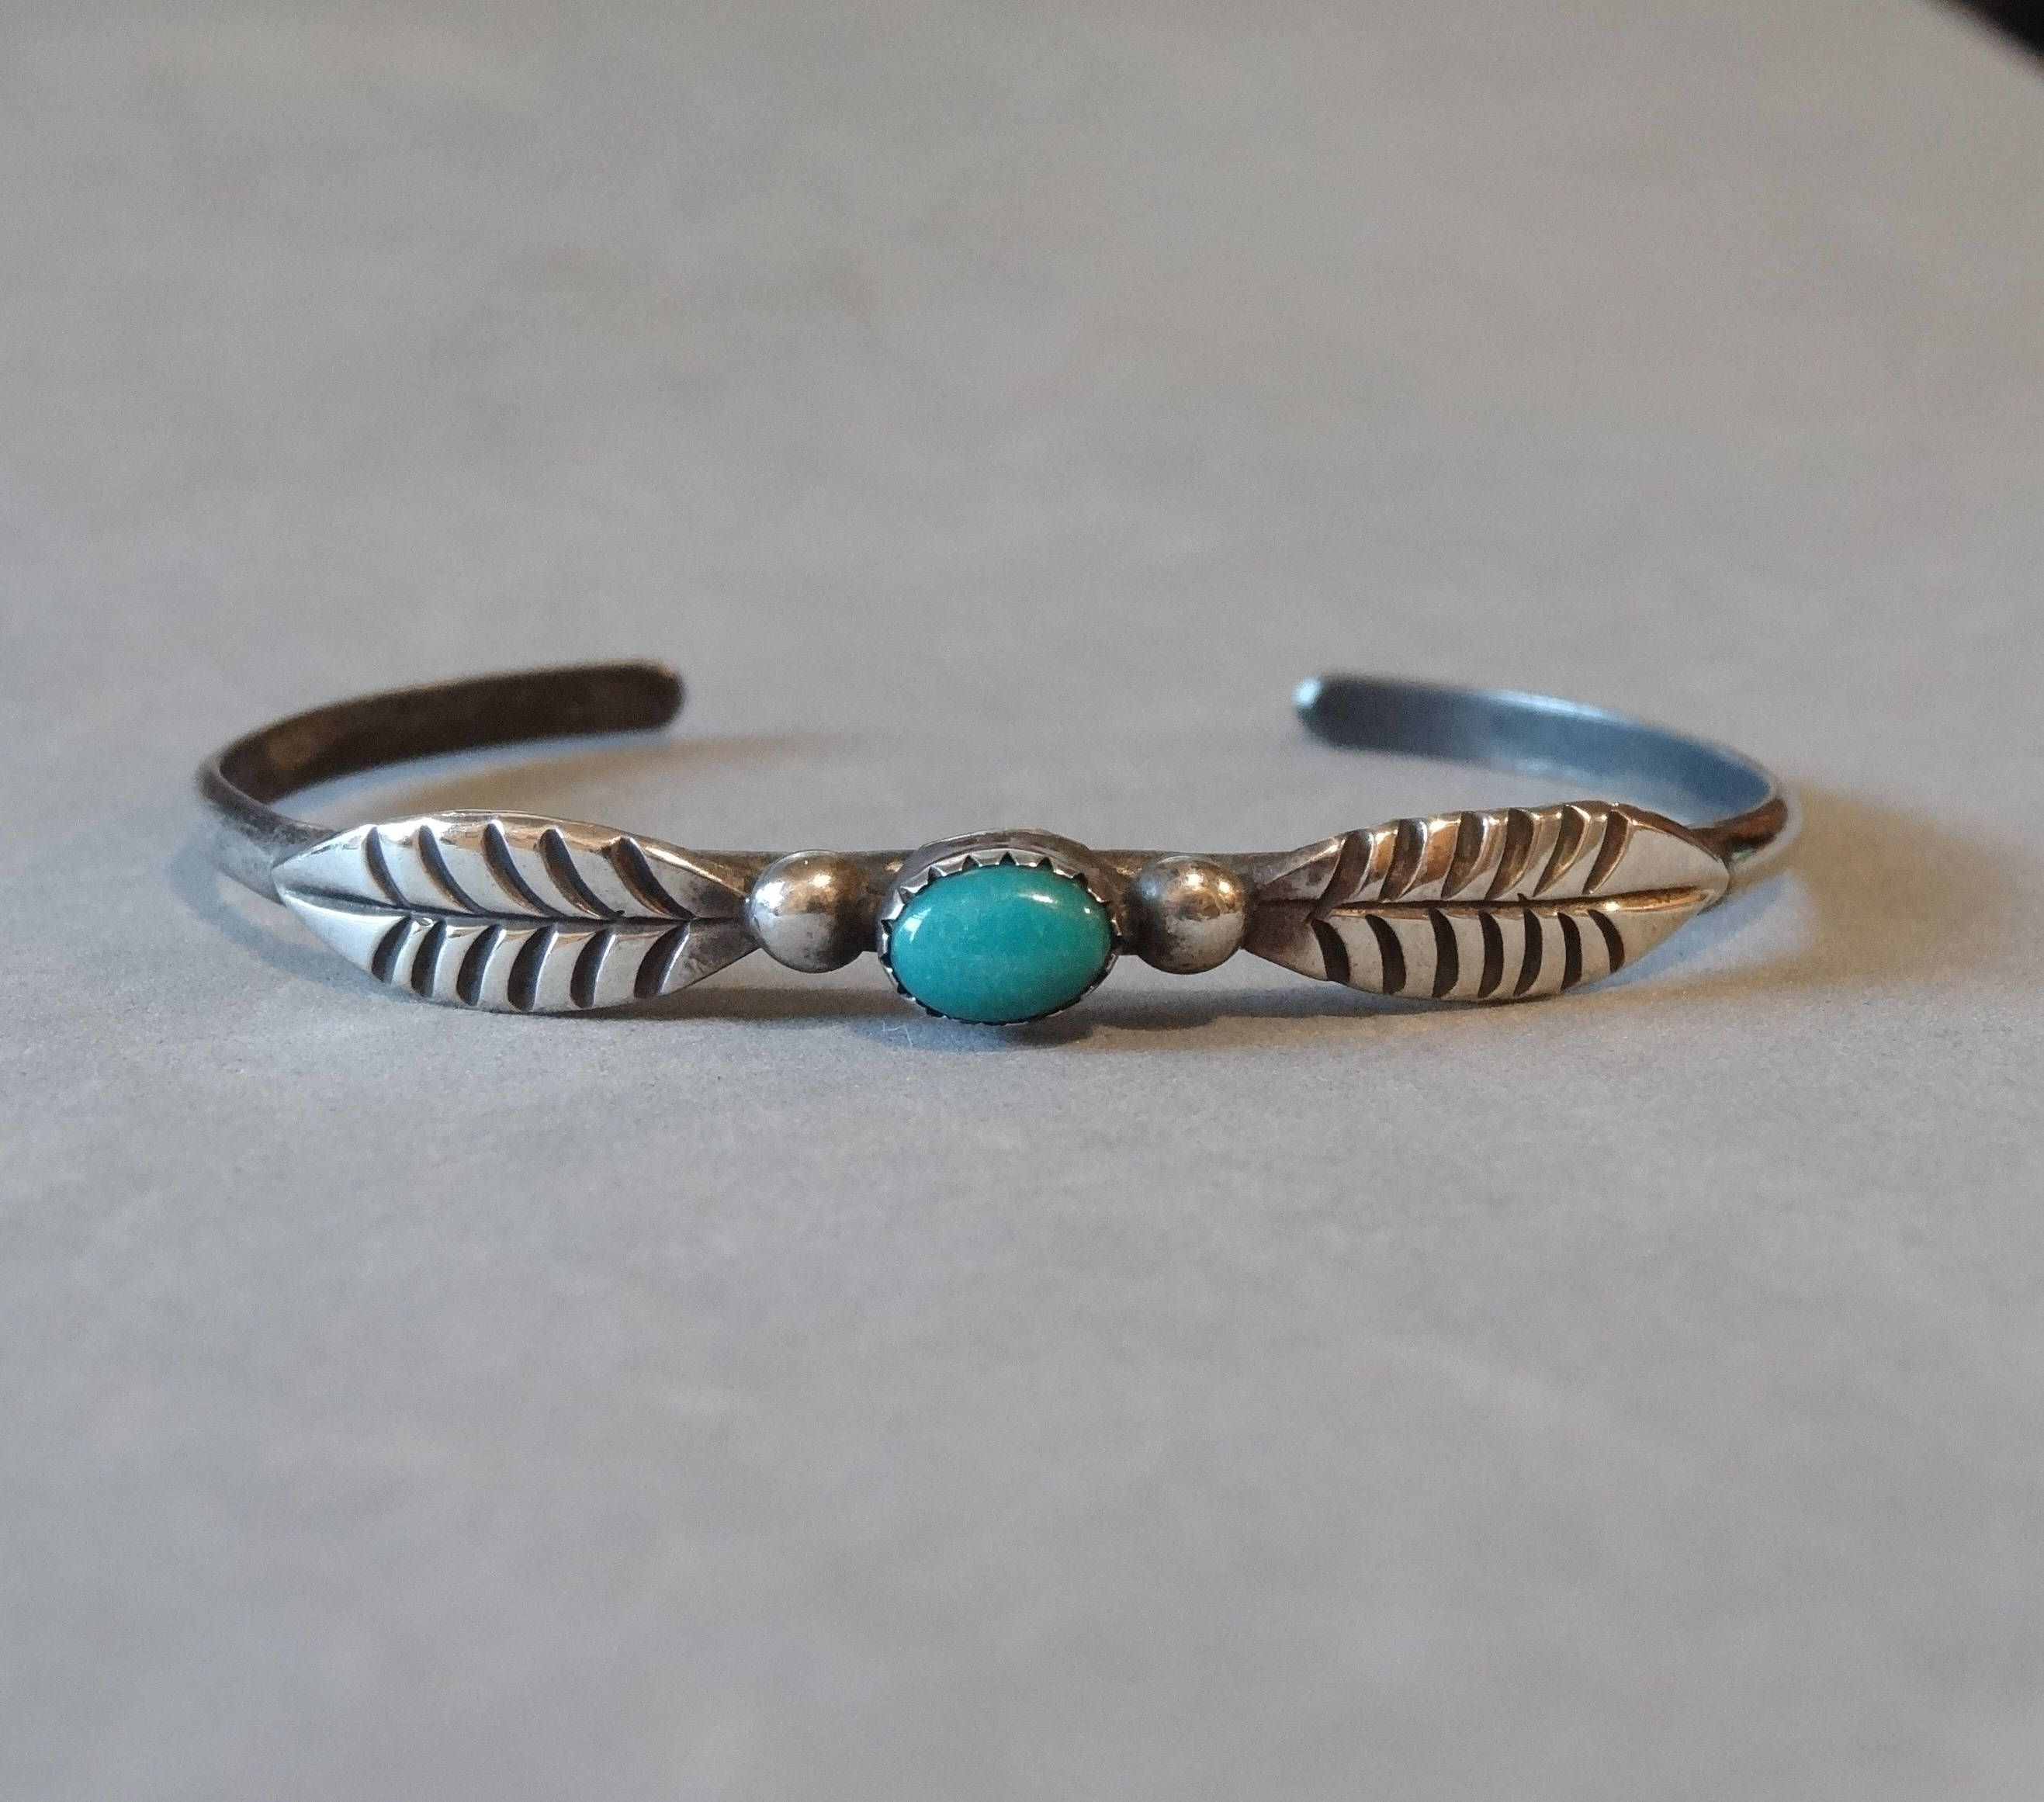 Vintage Sterling Silver Turquoise Cuff Bracelet Native American Navajo Indian Southwest Carved Leaf